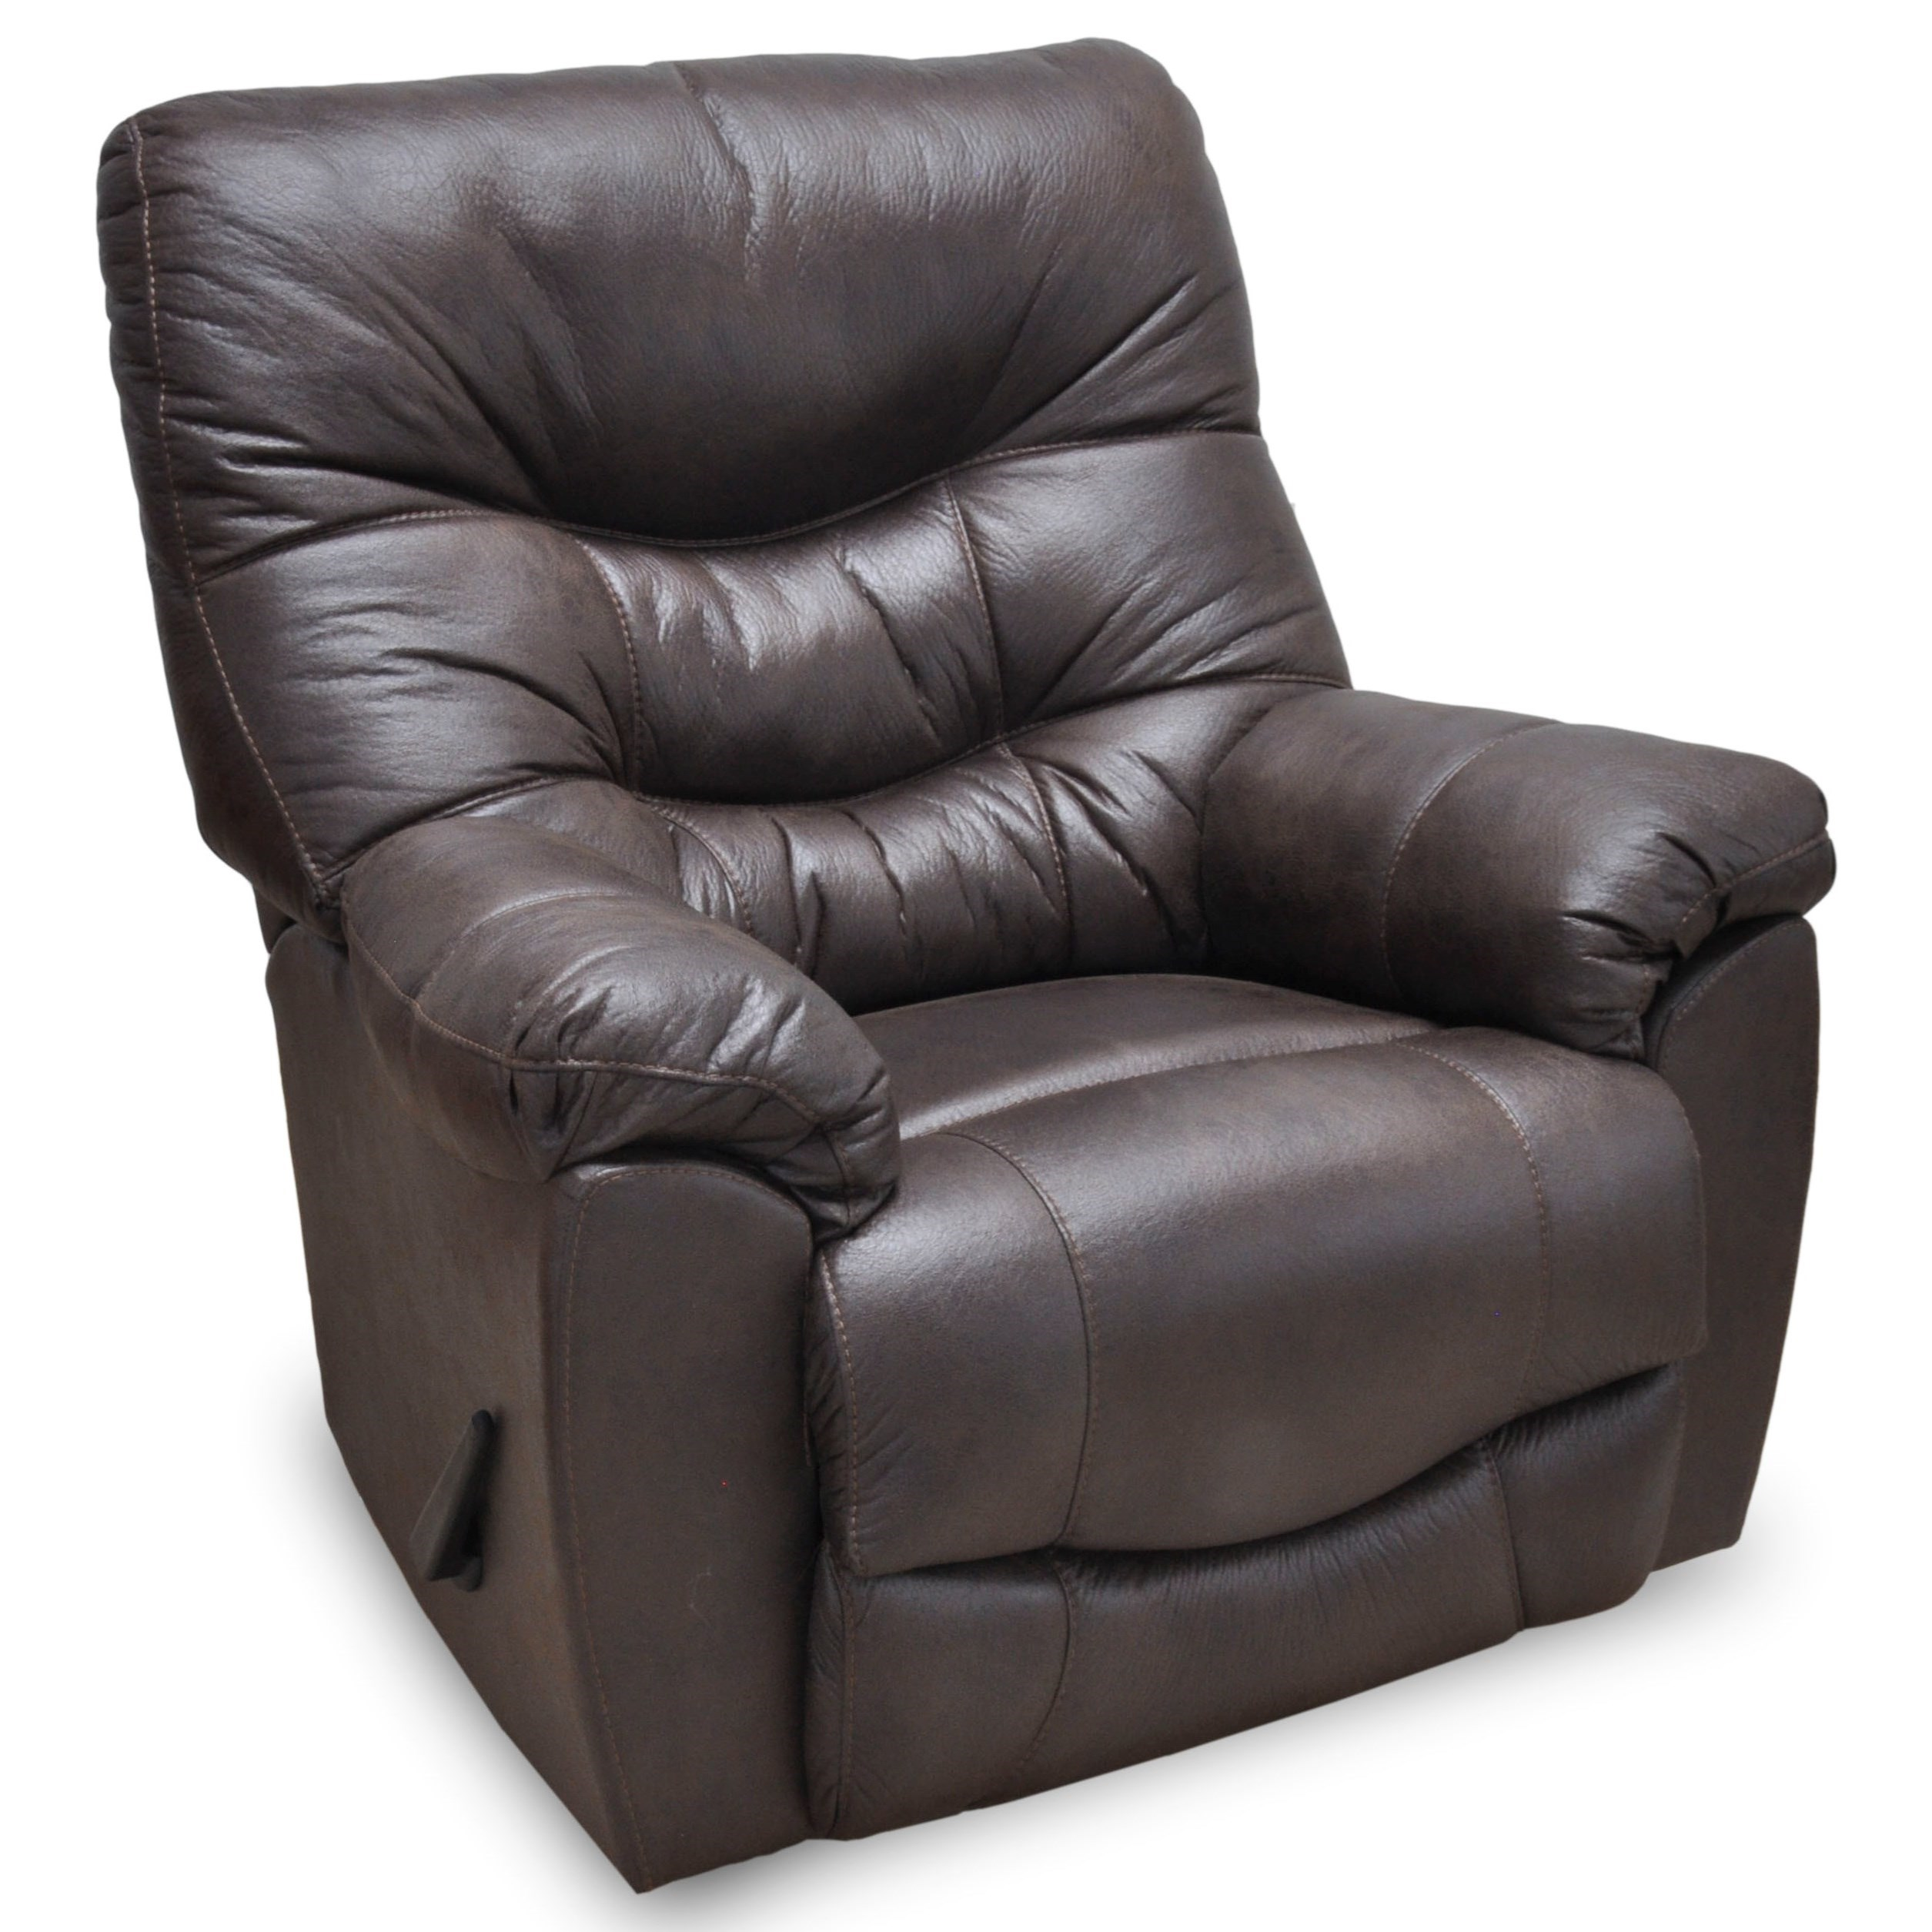 Franklin Recliners Trilogy Rocker Recliner by Franklin at Rooms for Less